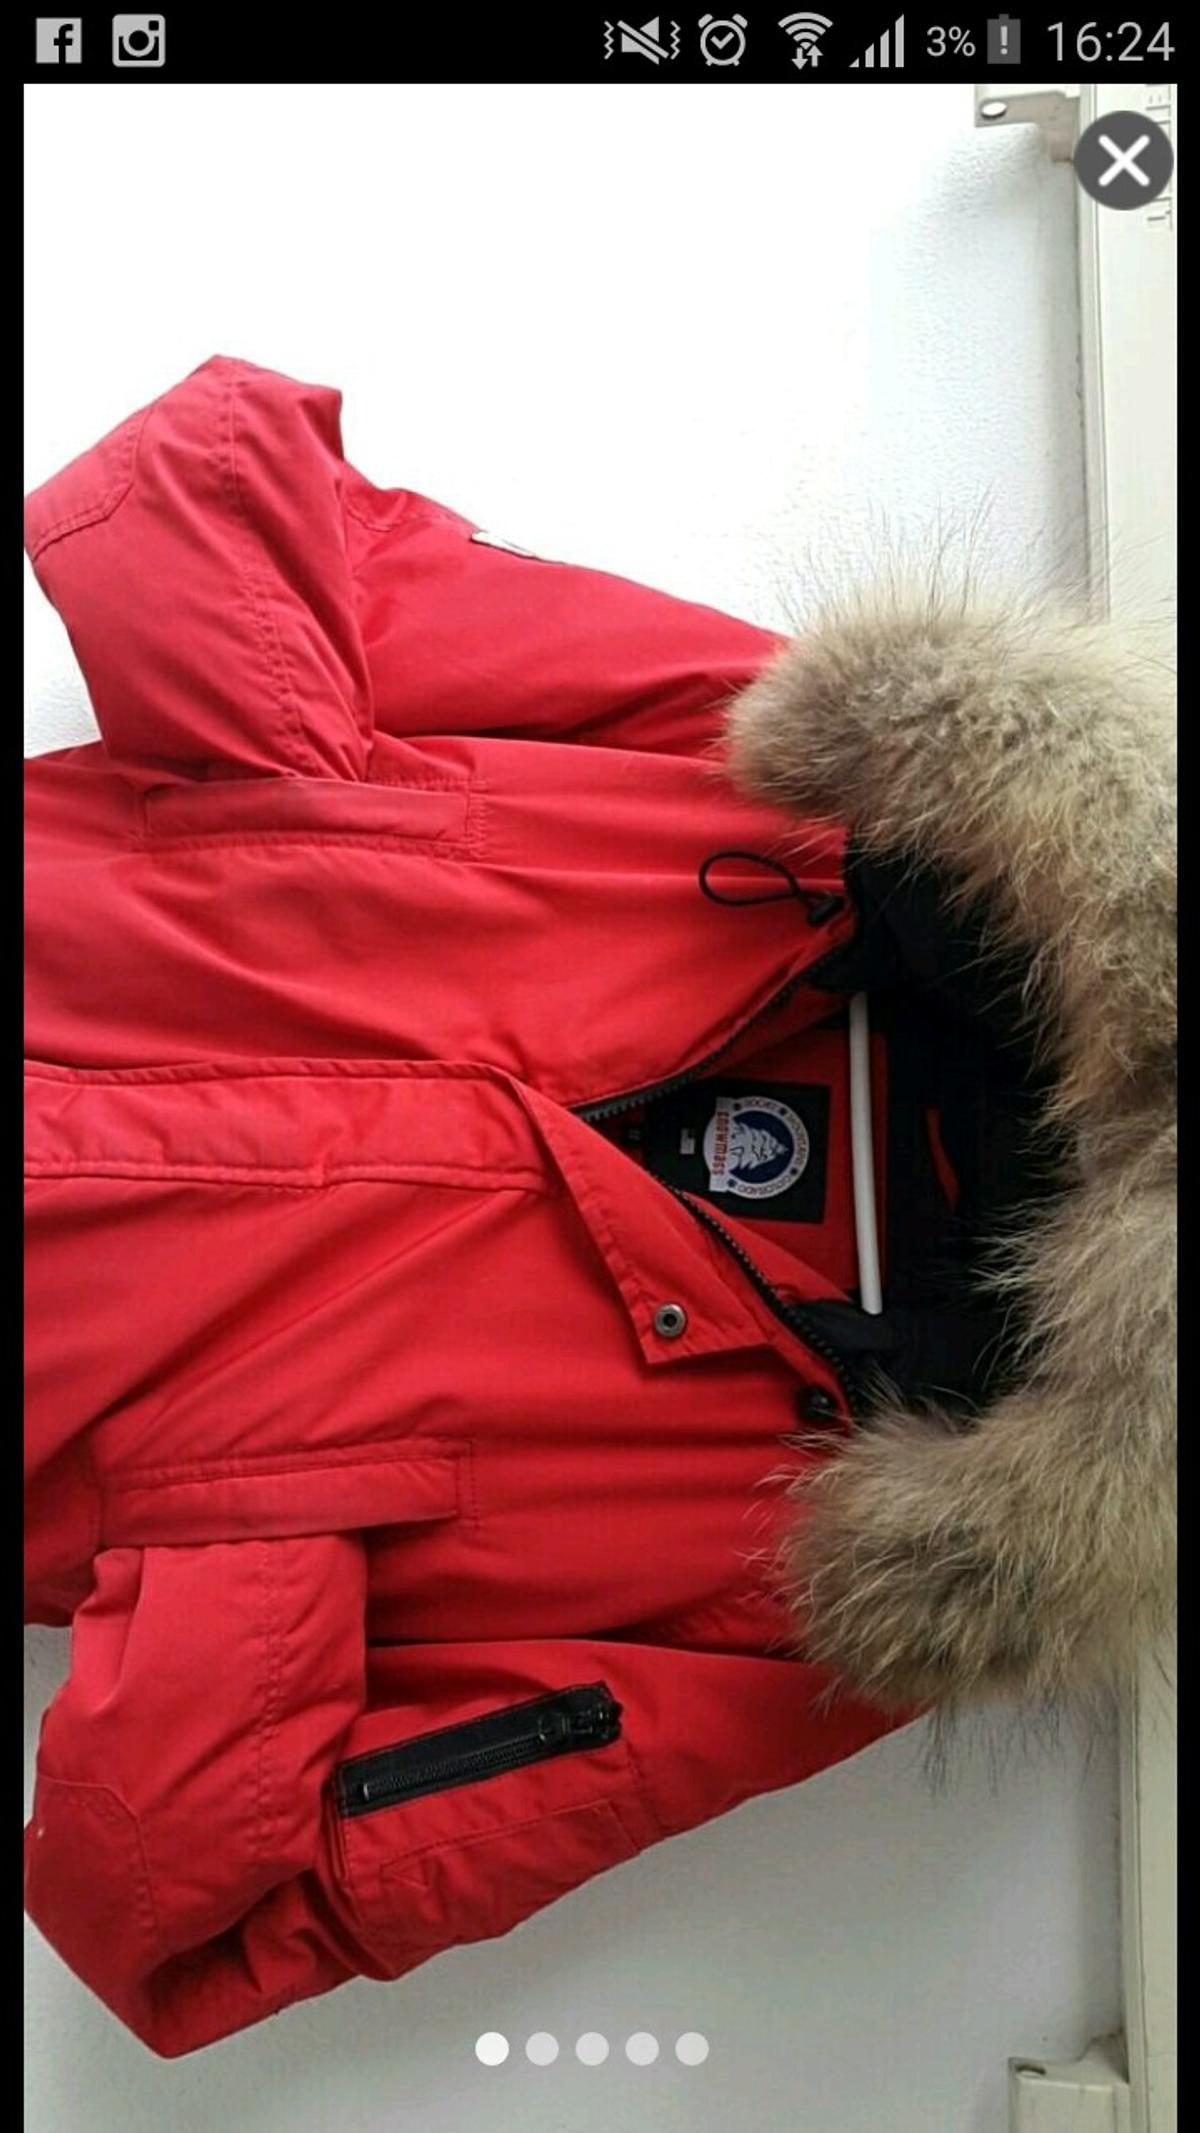 Snowmass Jacke rot M Canada Goose ähnlich in 40595